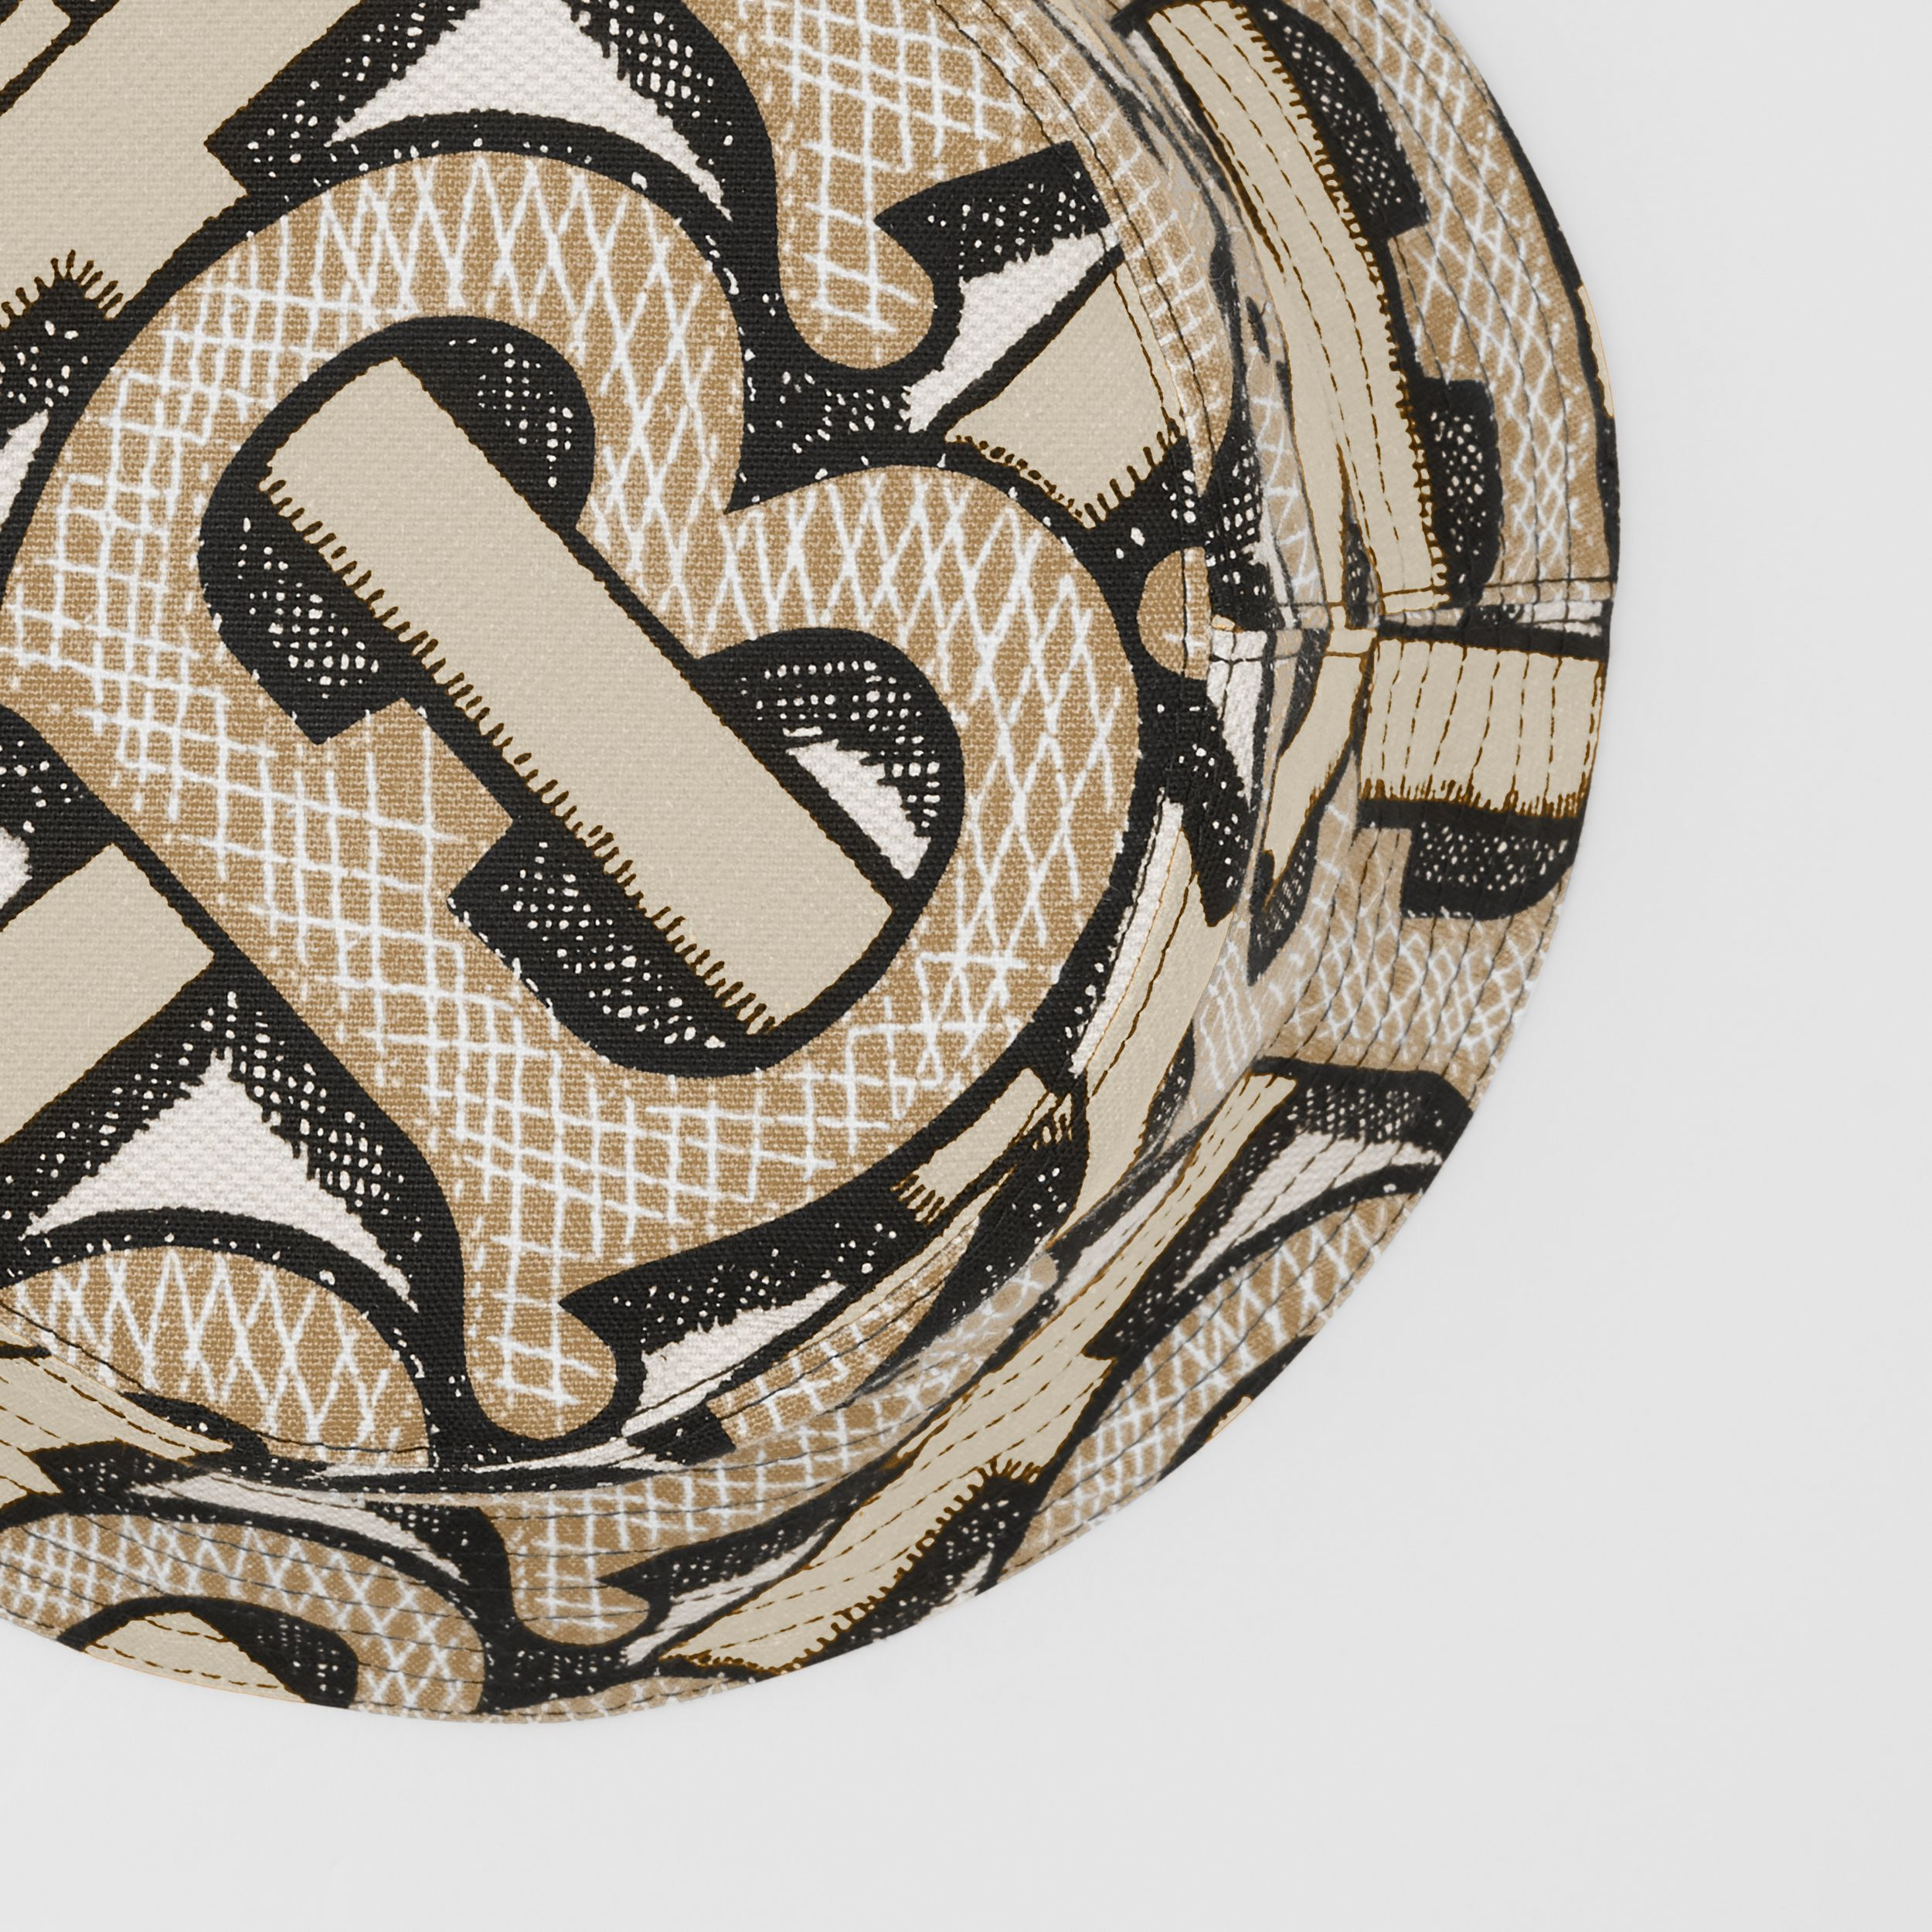 Monogram Print Cotton Canvas Bucket Hat in Dark Beige | Burberry Singapore - 2